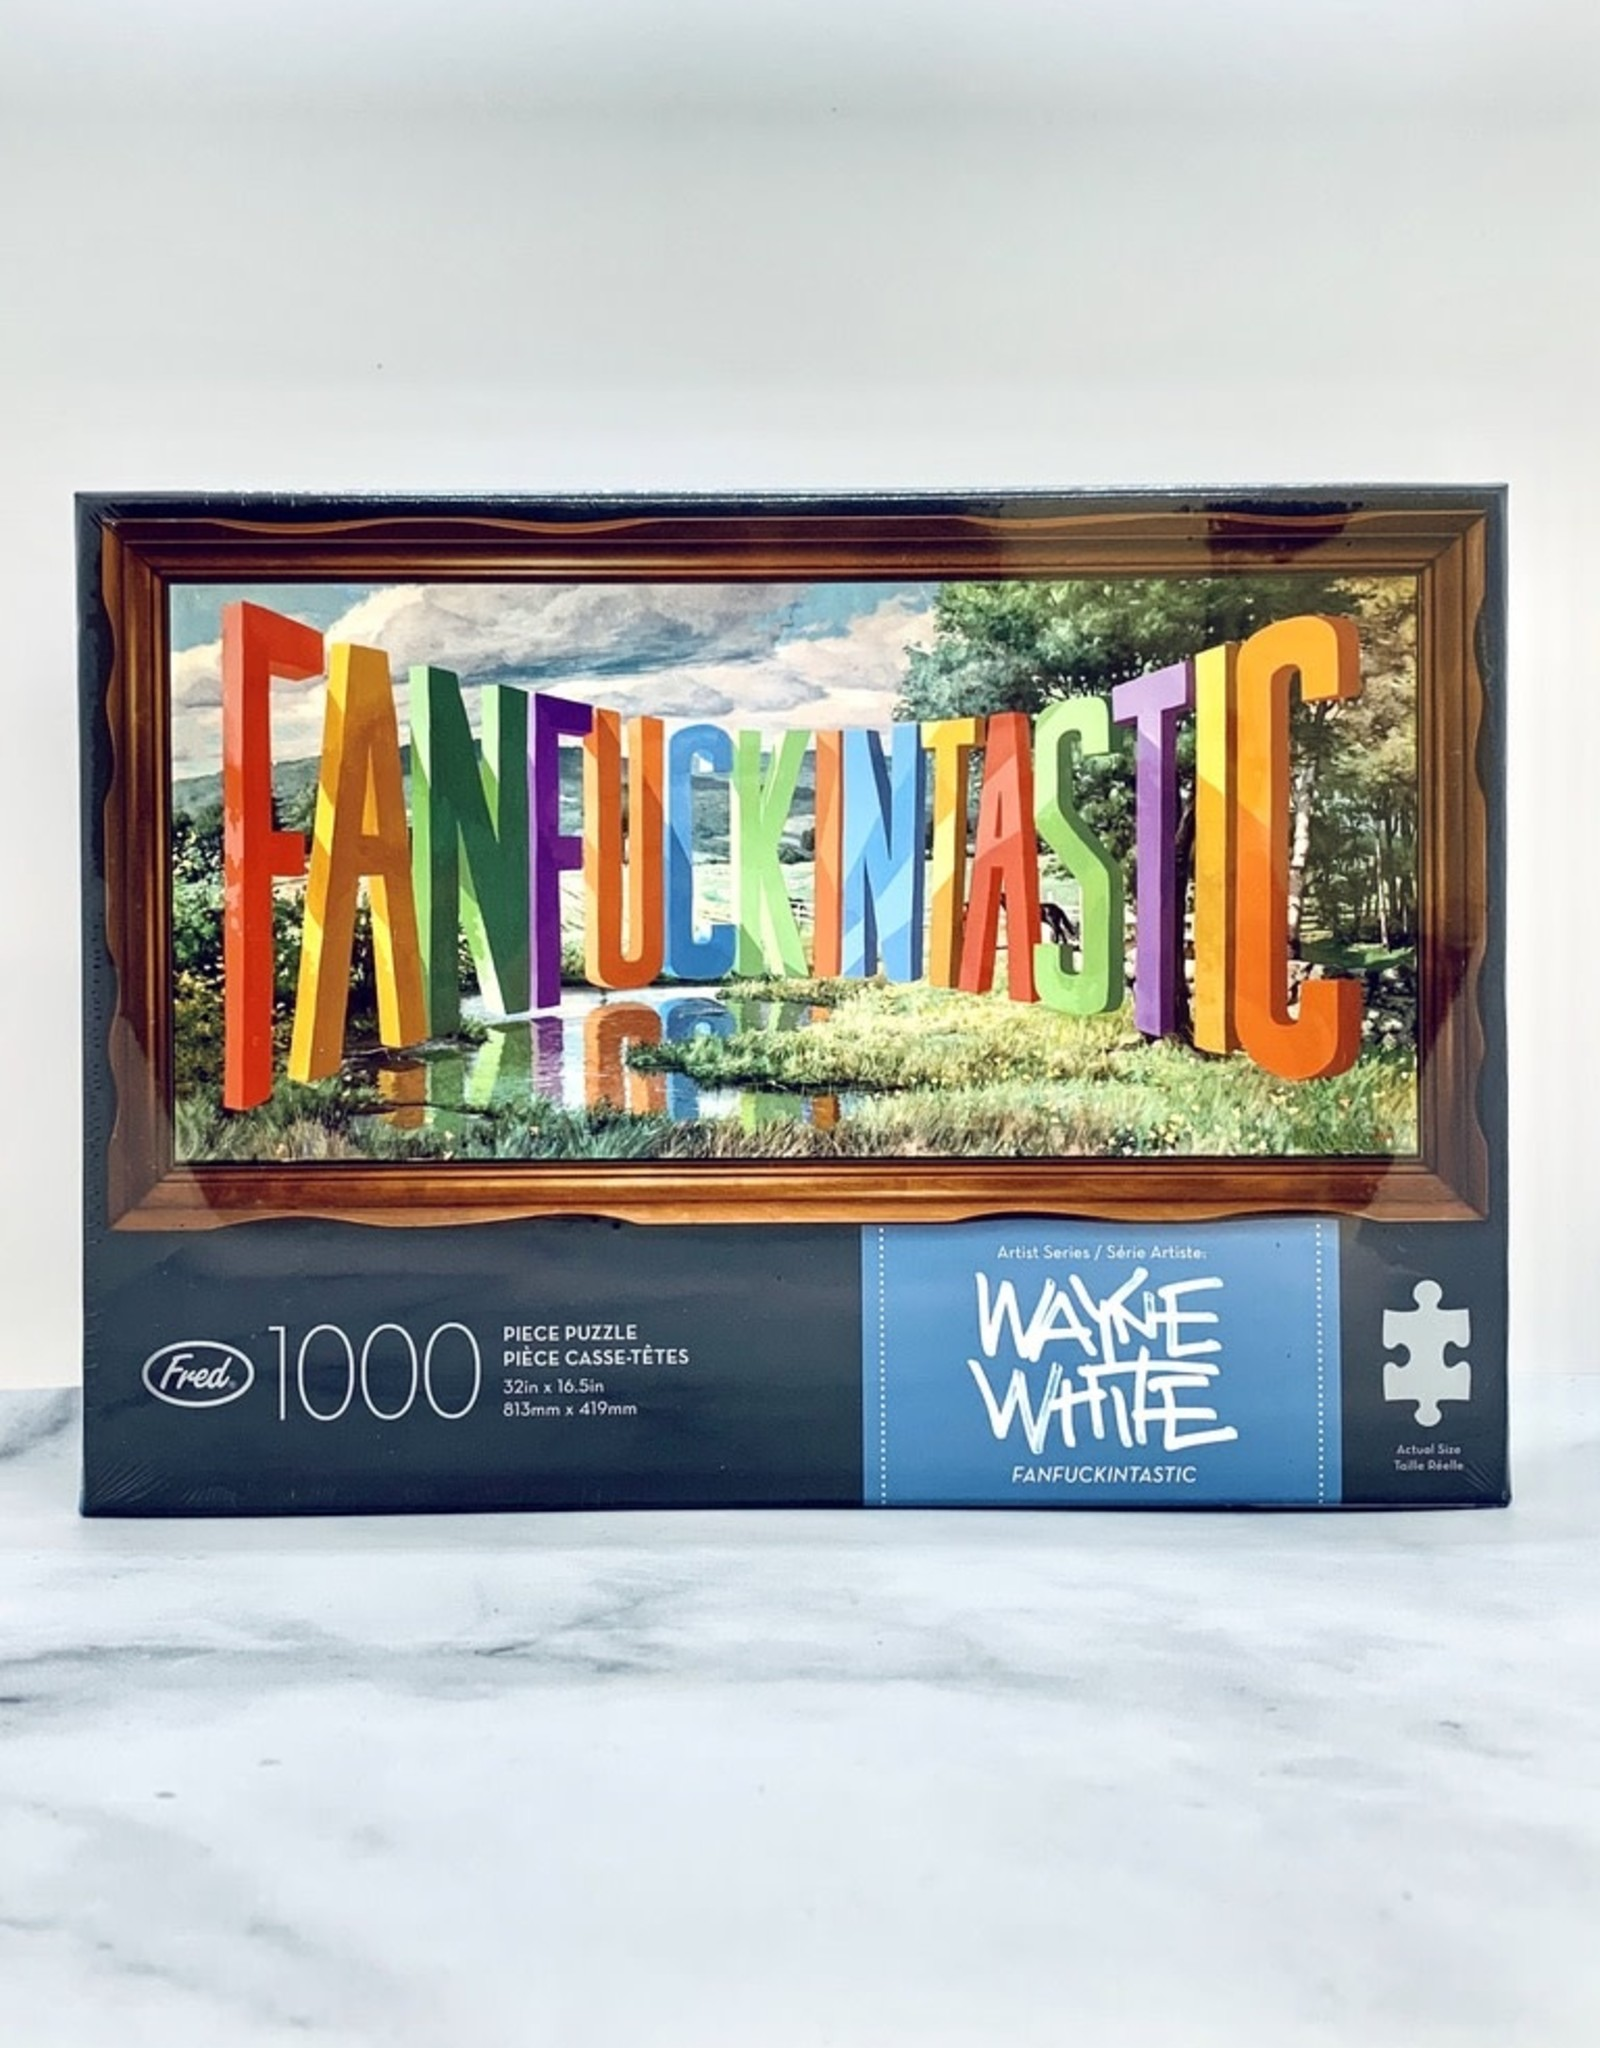 Fred Wayne White Fanfuckintastic 1000 Piece Puzzle